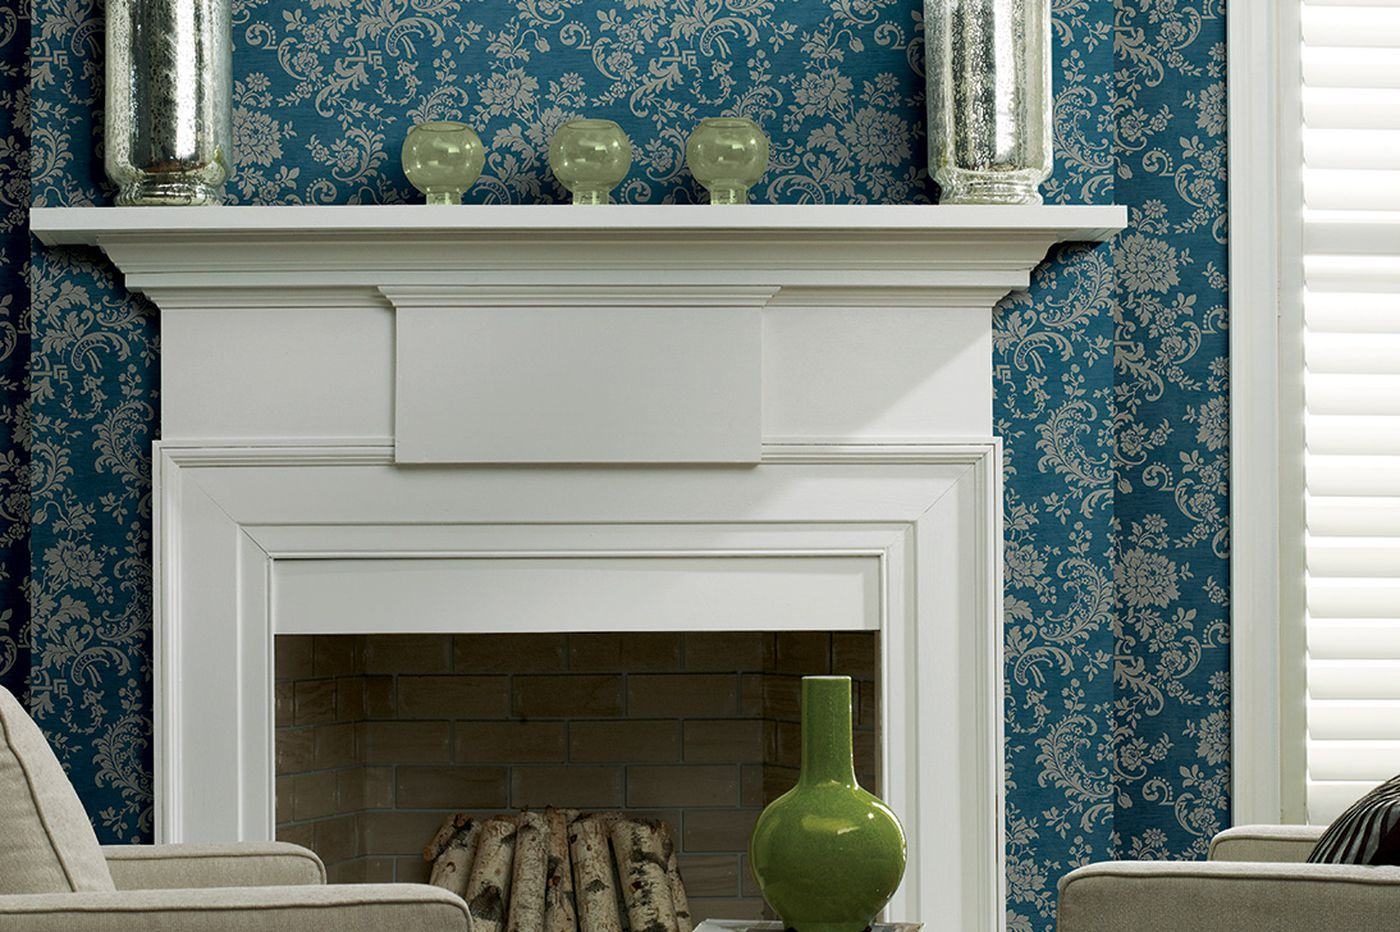 Ask Jennifer Adams: One wall or all? Is wallpaper right for your home decor?